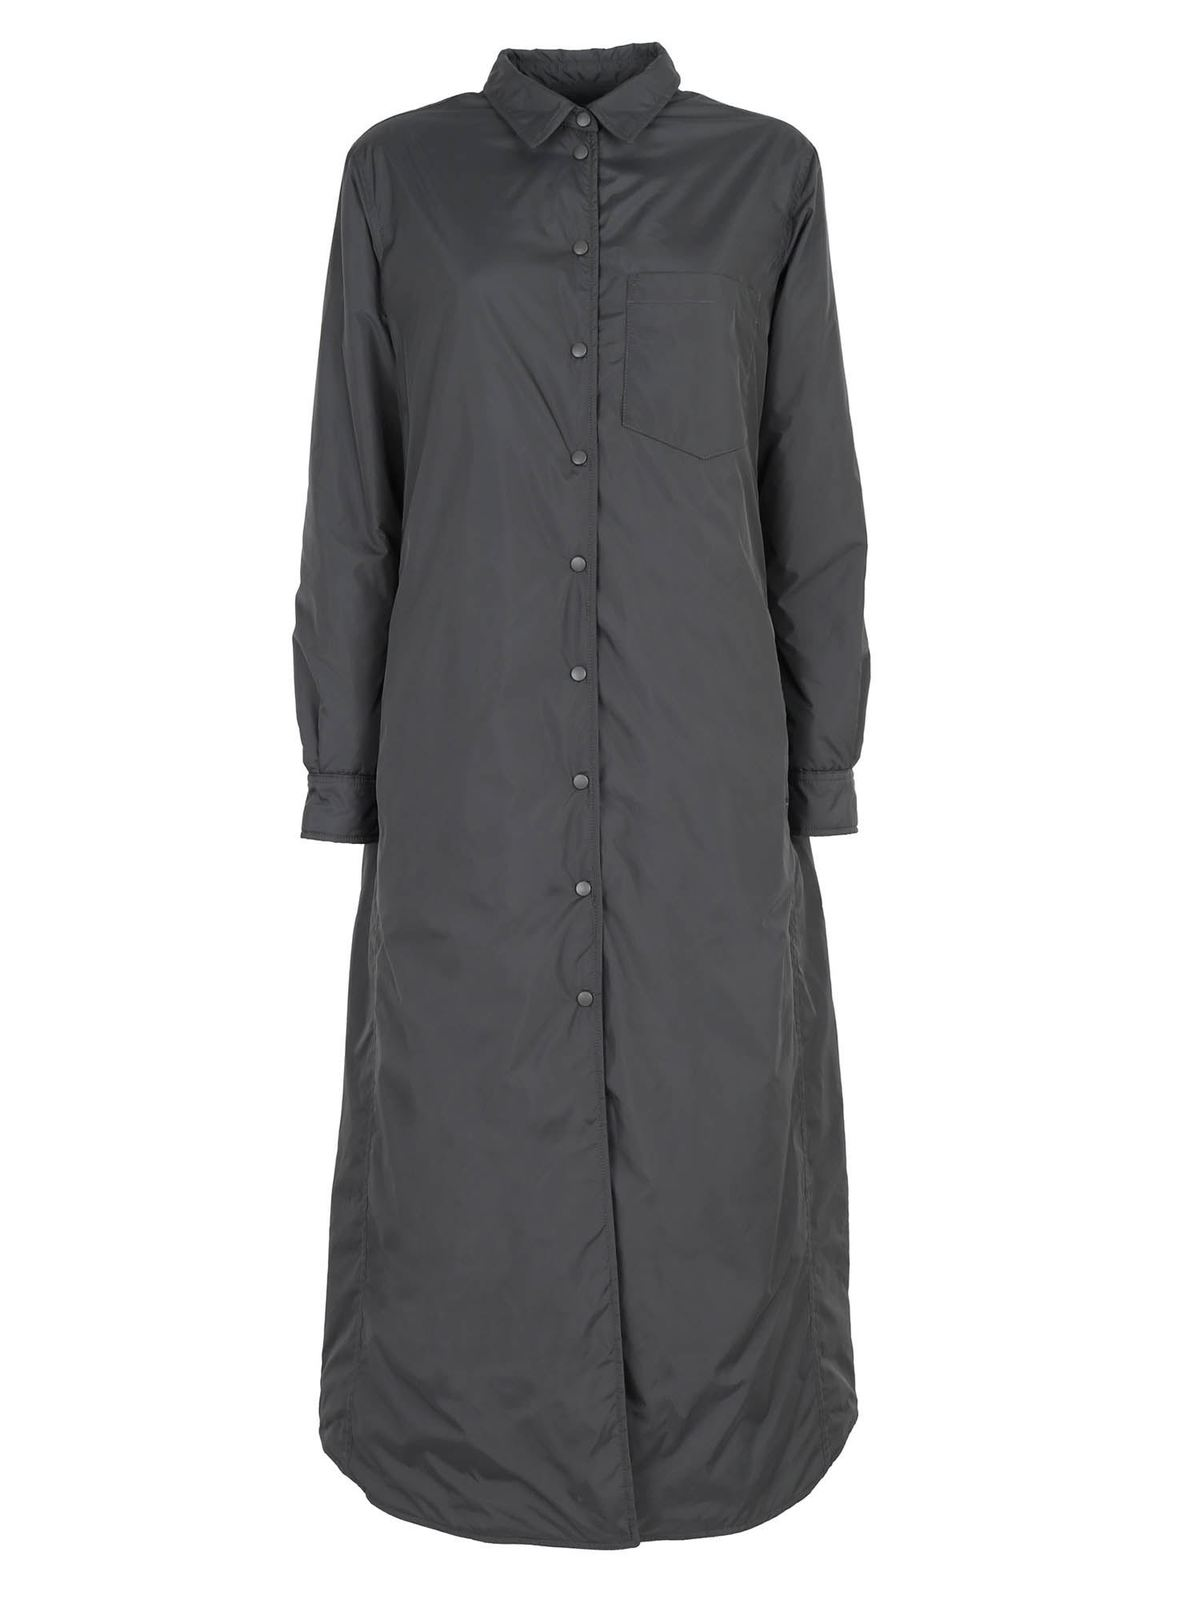 Aspesi PADDED MAXI SHIRT IN GREY